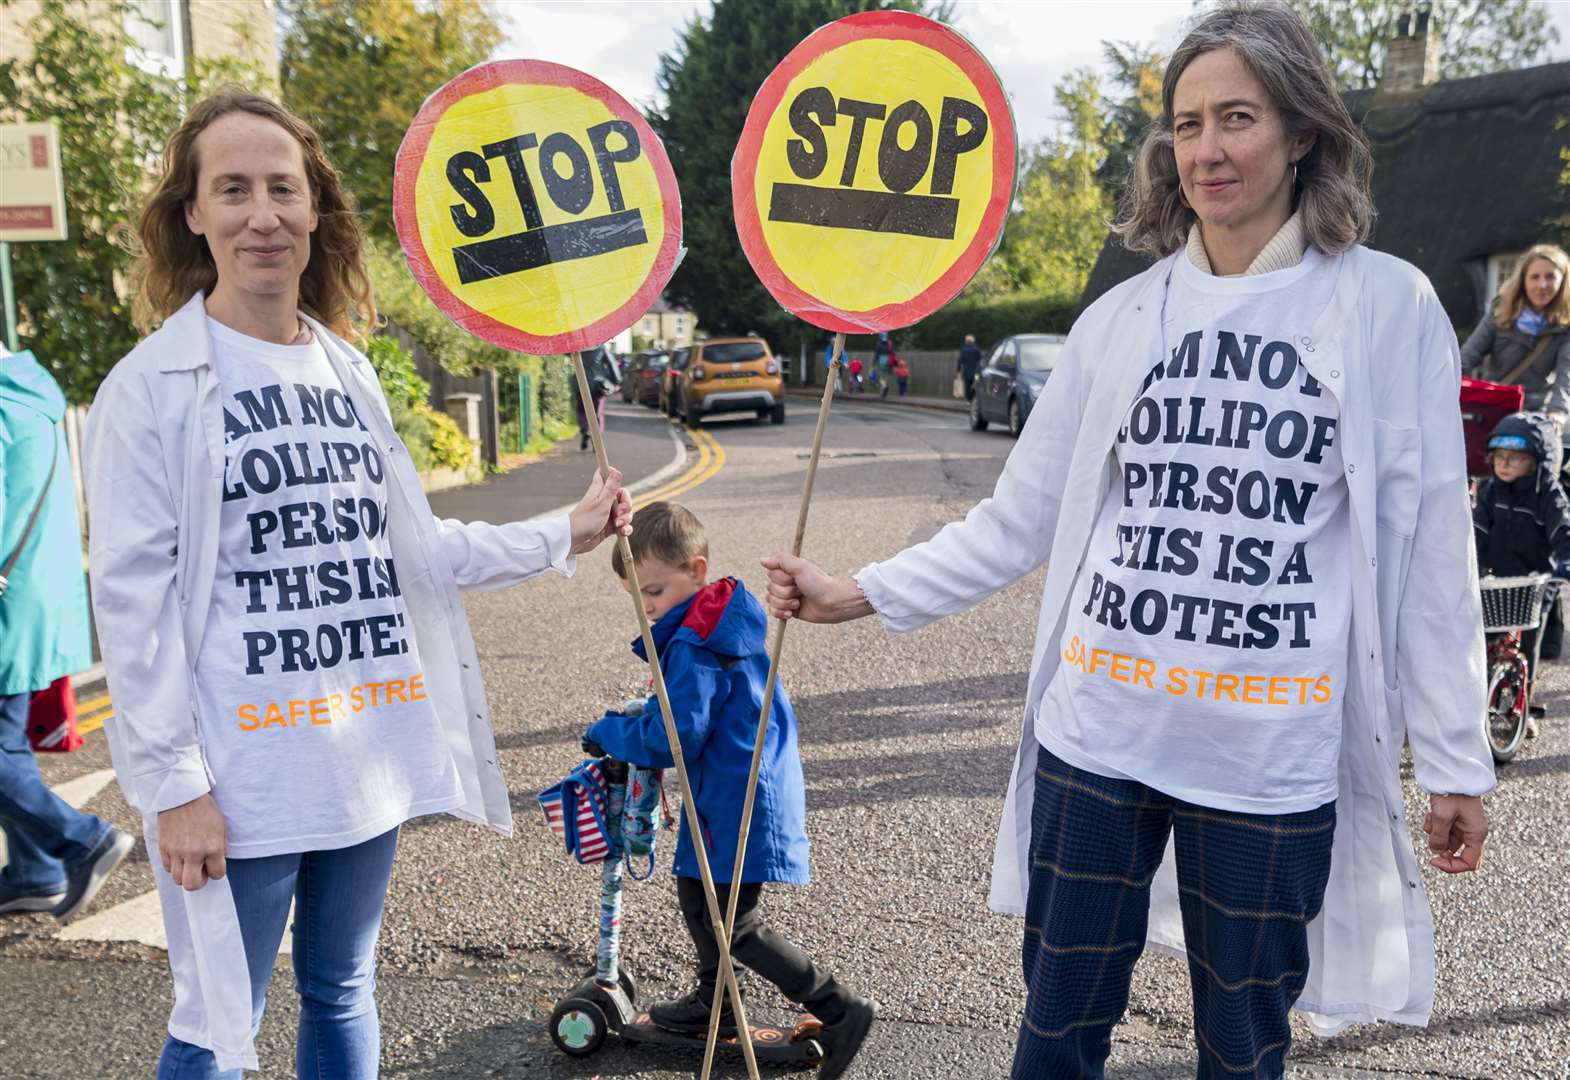 Lollipop patrol protestors' warnings about school run safety